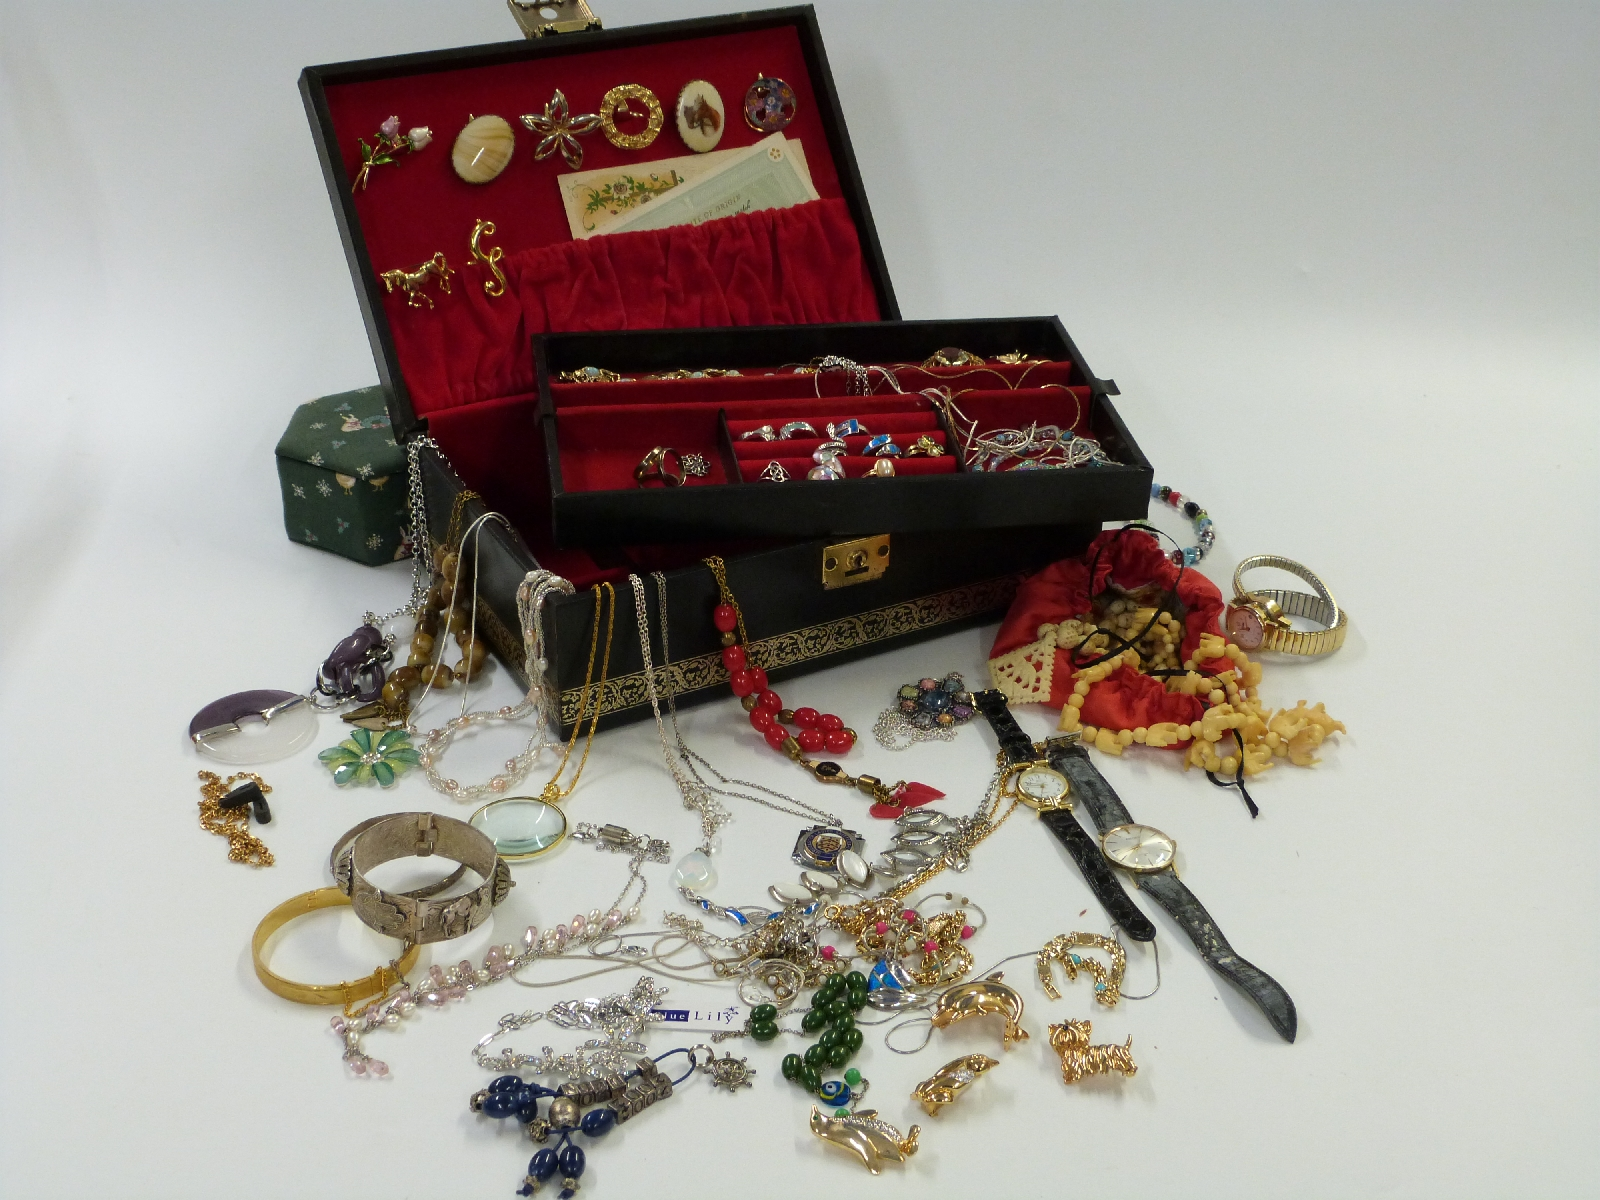 Lot 43 - A large collection of costume jewellery including silver rings, beads, silver necklaces, brooches,